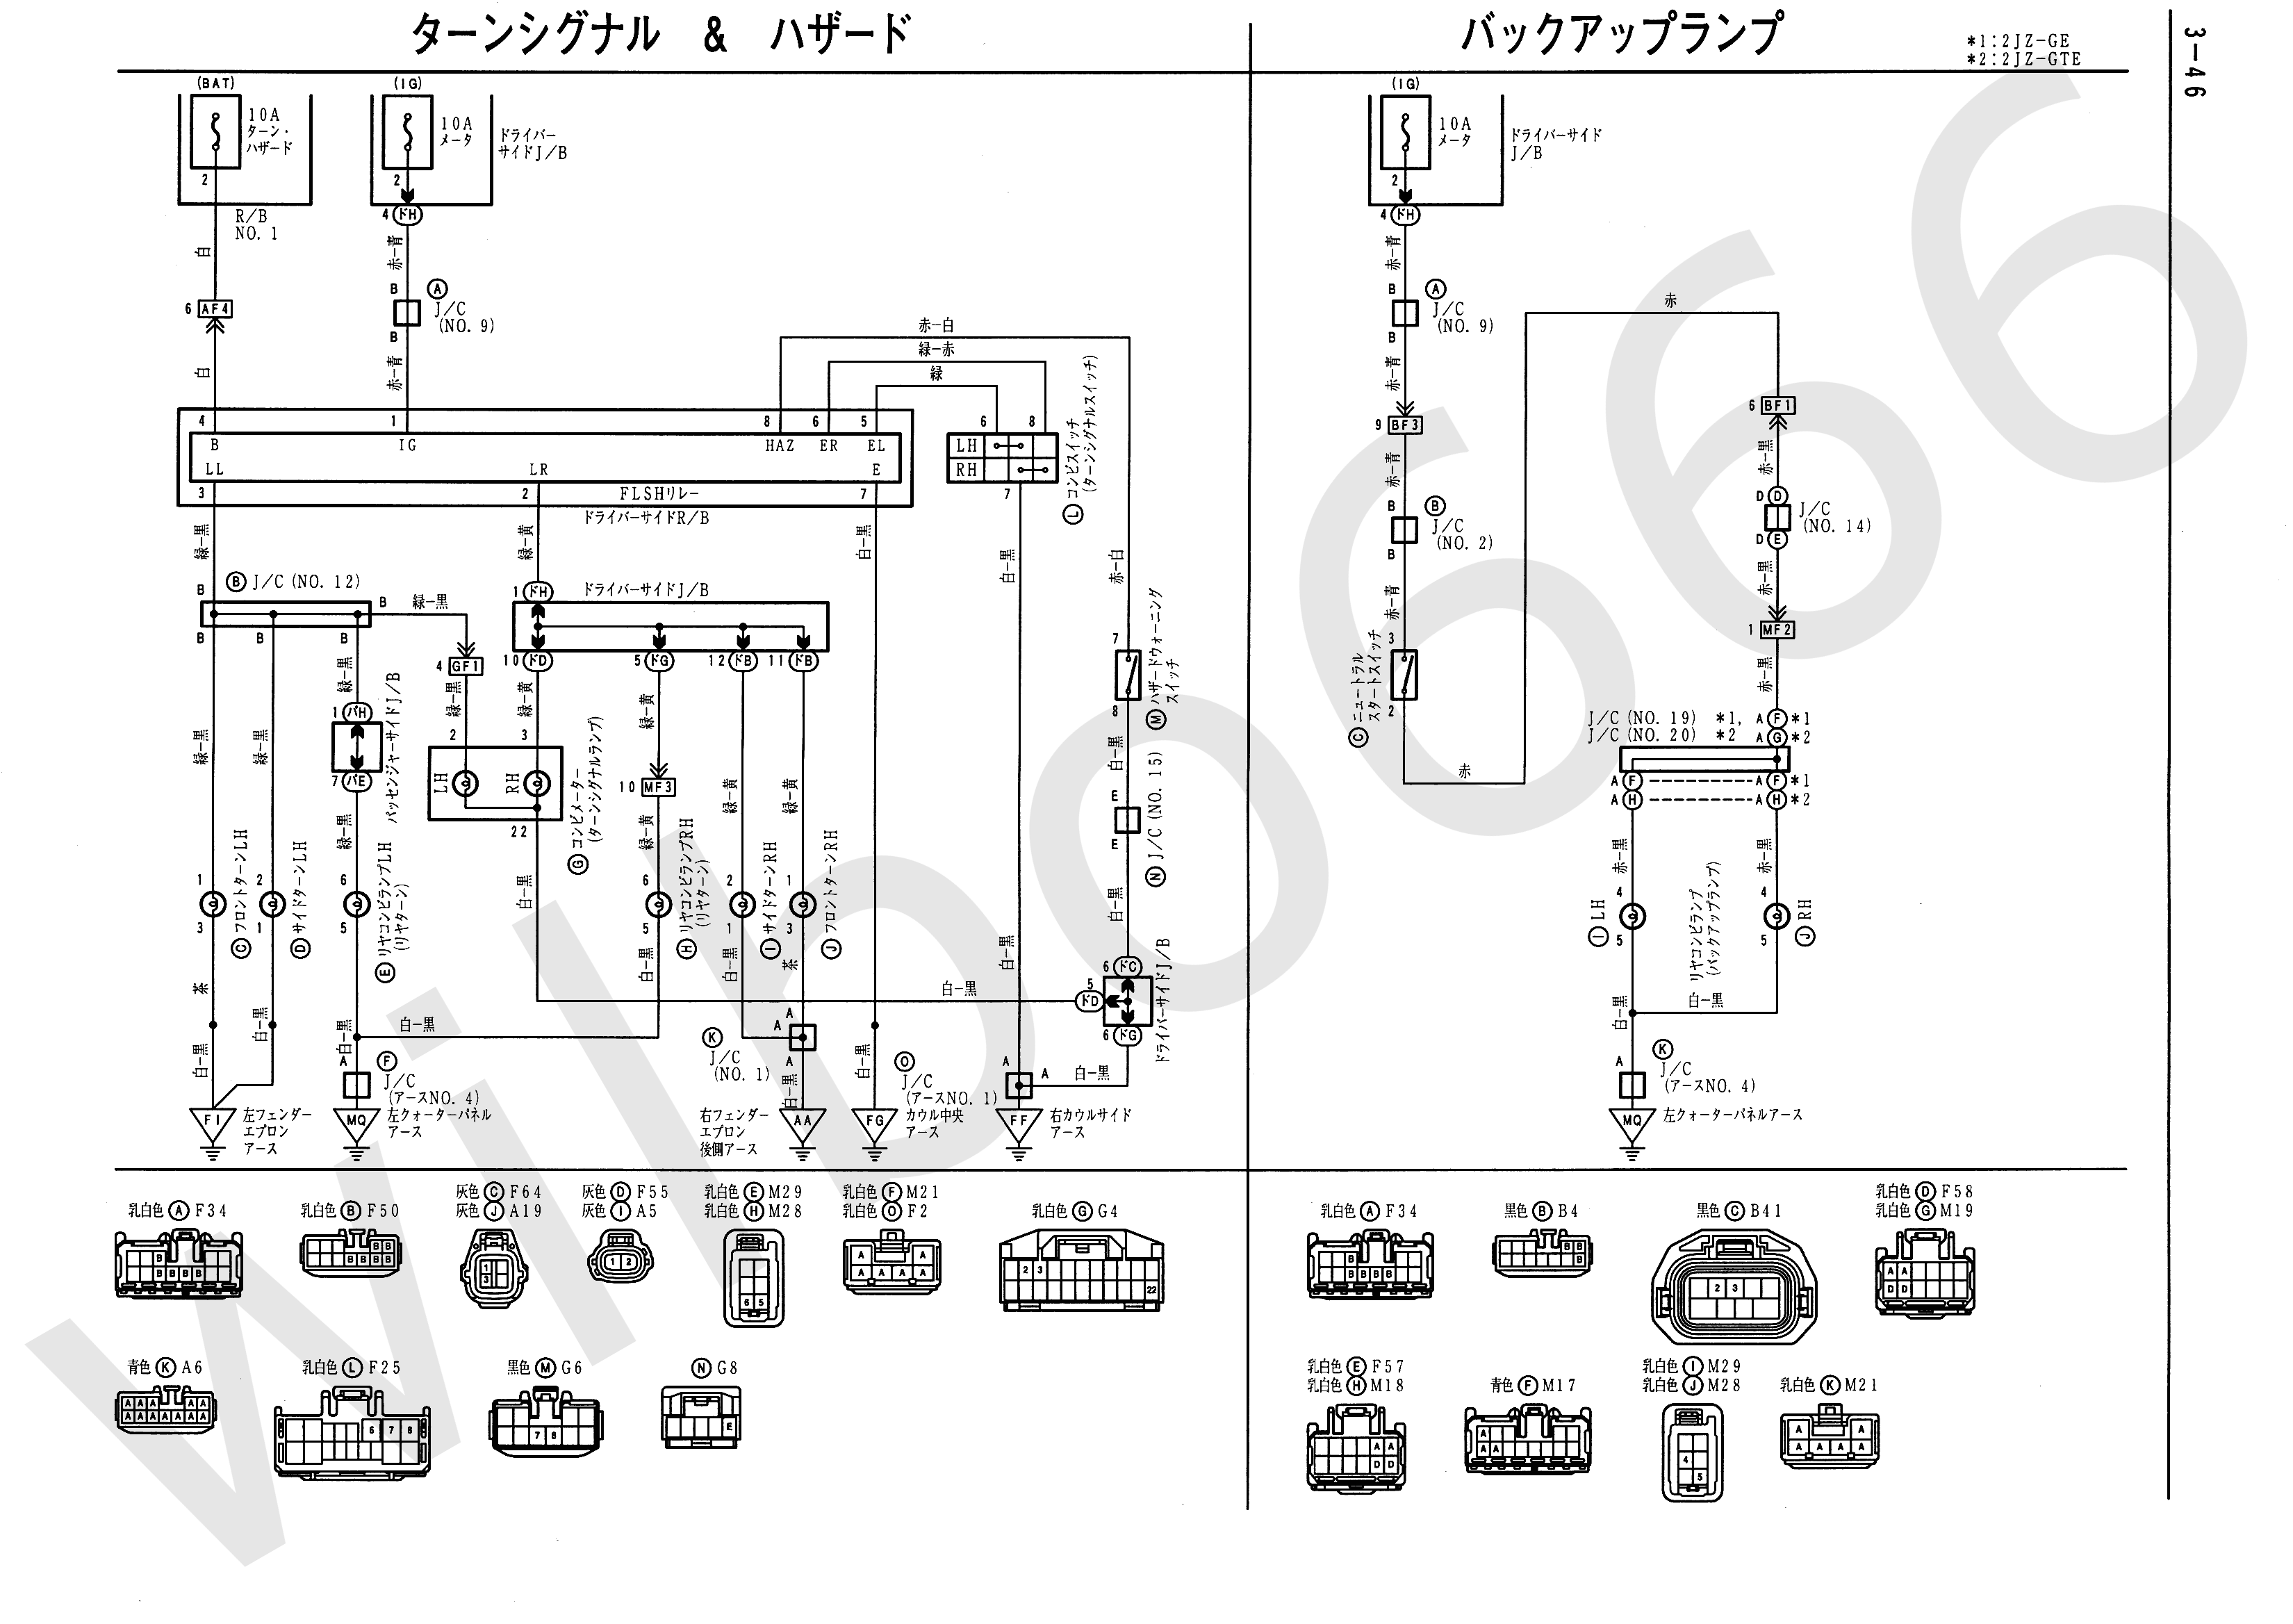 JZS161 Electrical Wiring Diagram 6748505 3 46 wilbo666 2jz gte vvti jzs161 aristo engine wiring 2jzgte wiring diagram at reclaimingppi.co